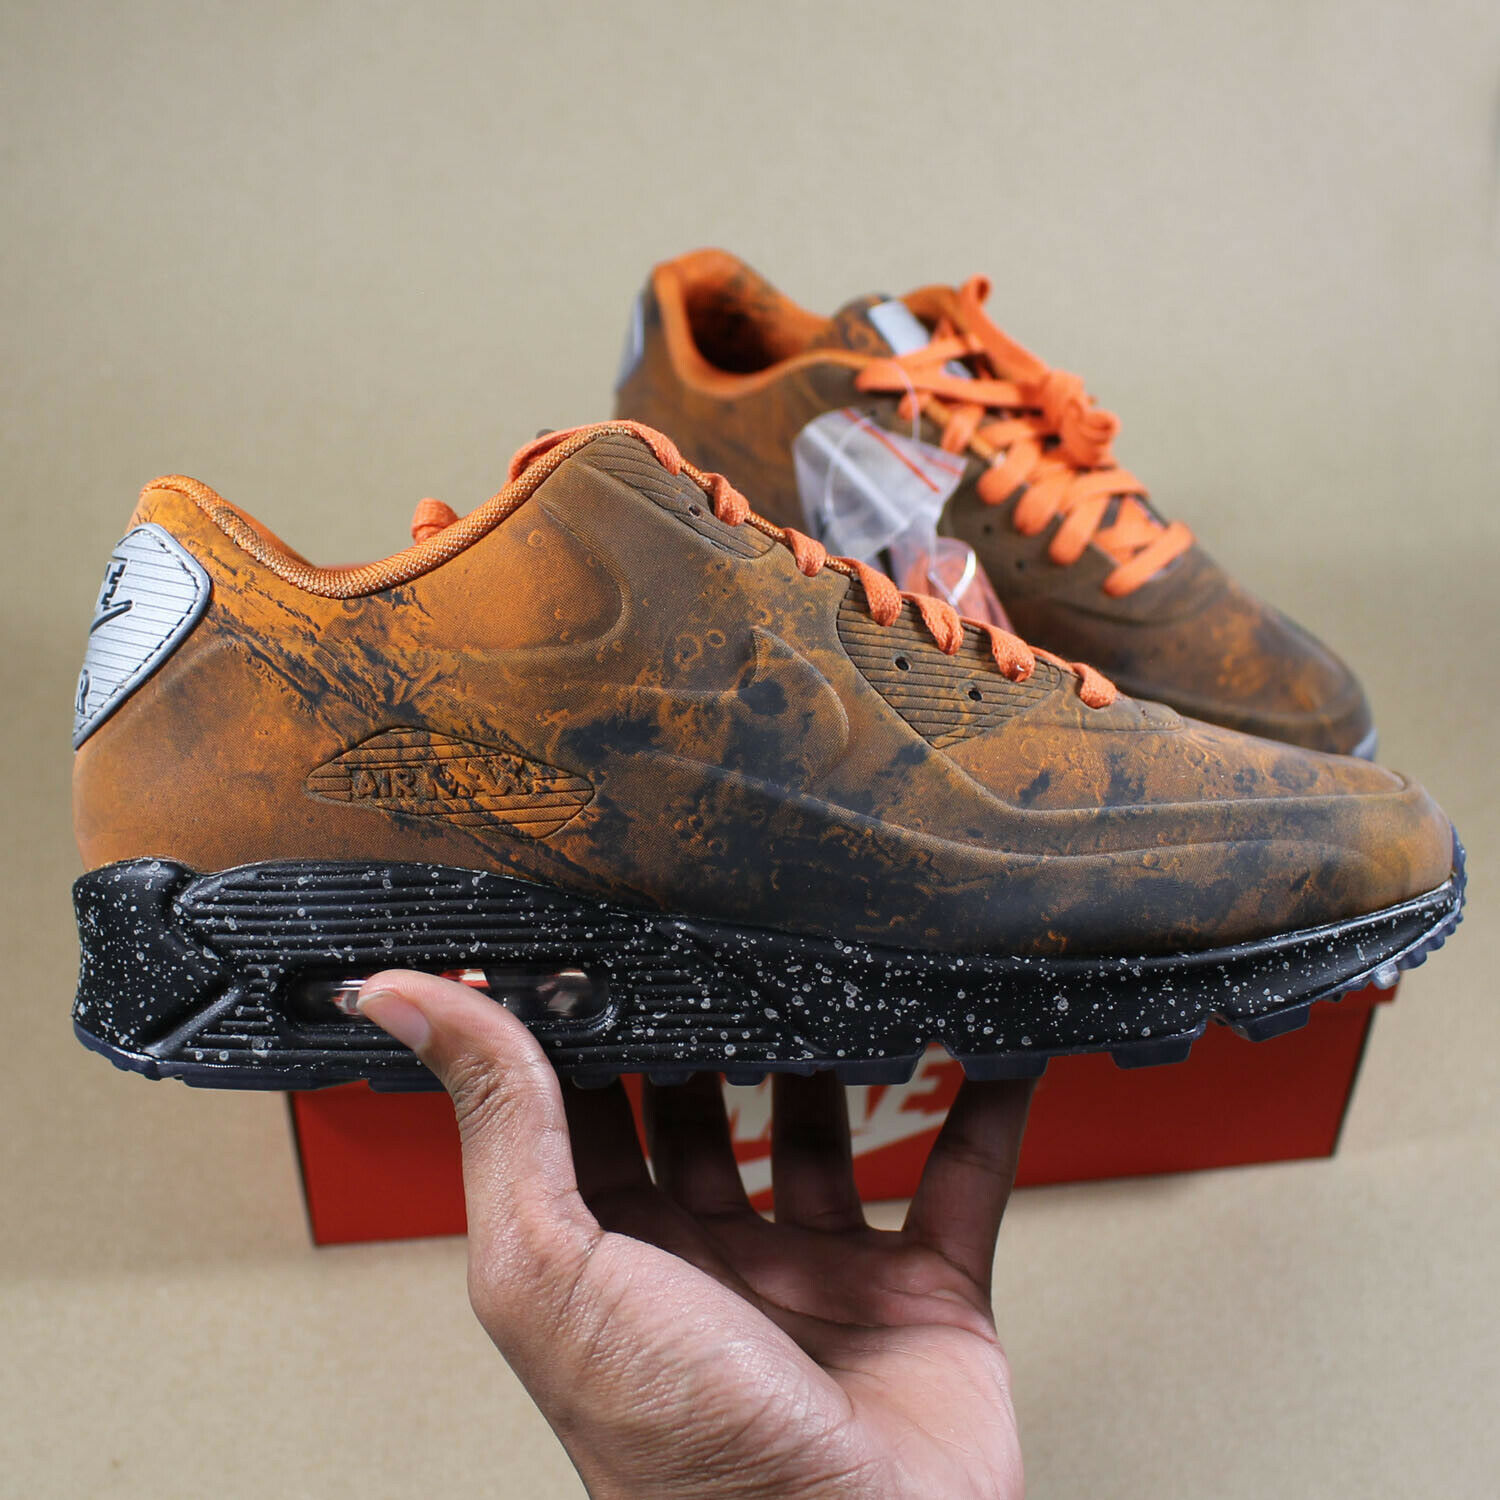 Nike Air Max 90 QS Mars Landing New Size 9.5 CD0920-600 - In Hand Free Shipping